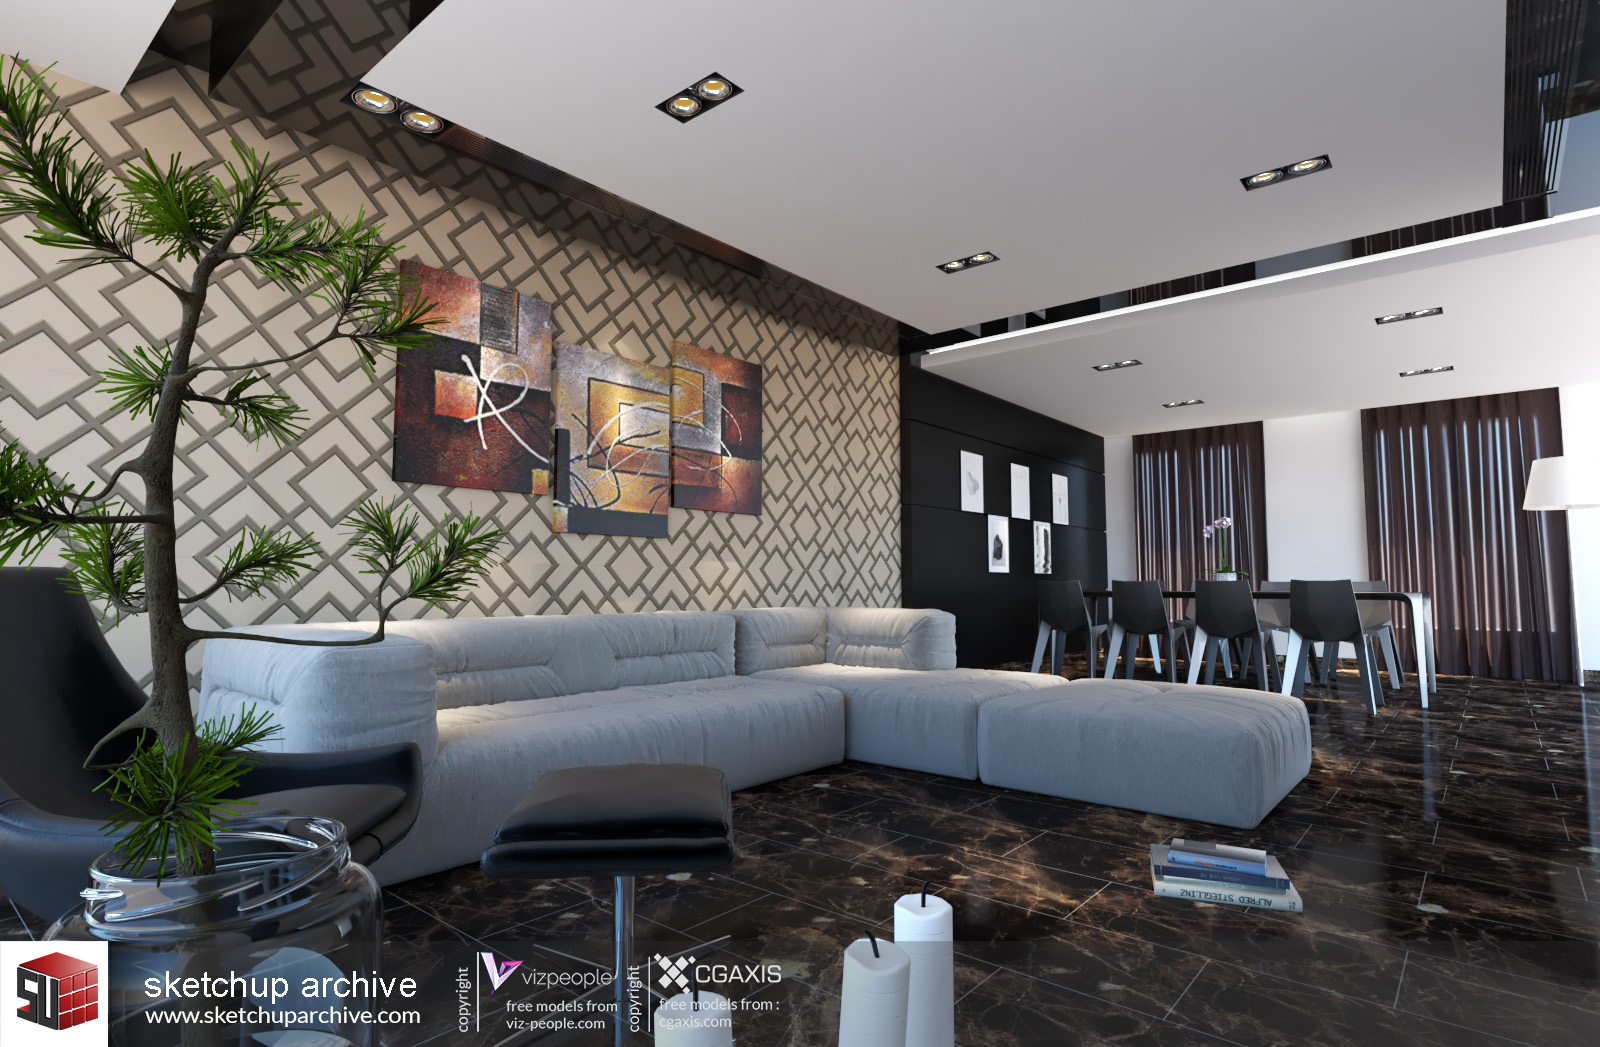 Living Room 3 - Sketchup Archive